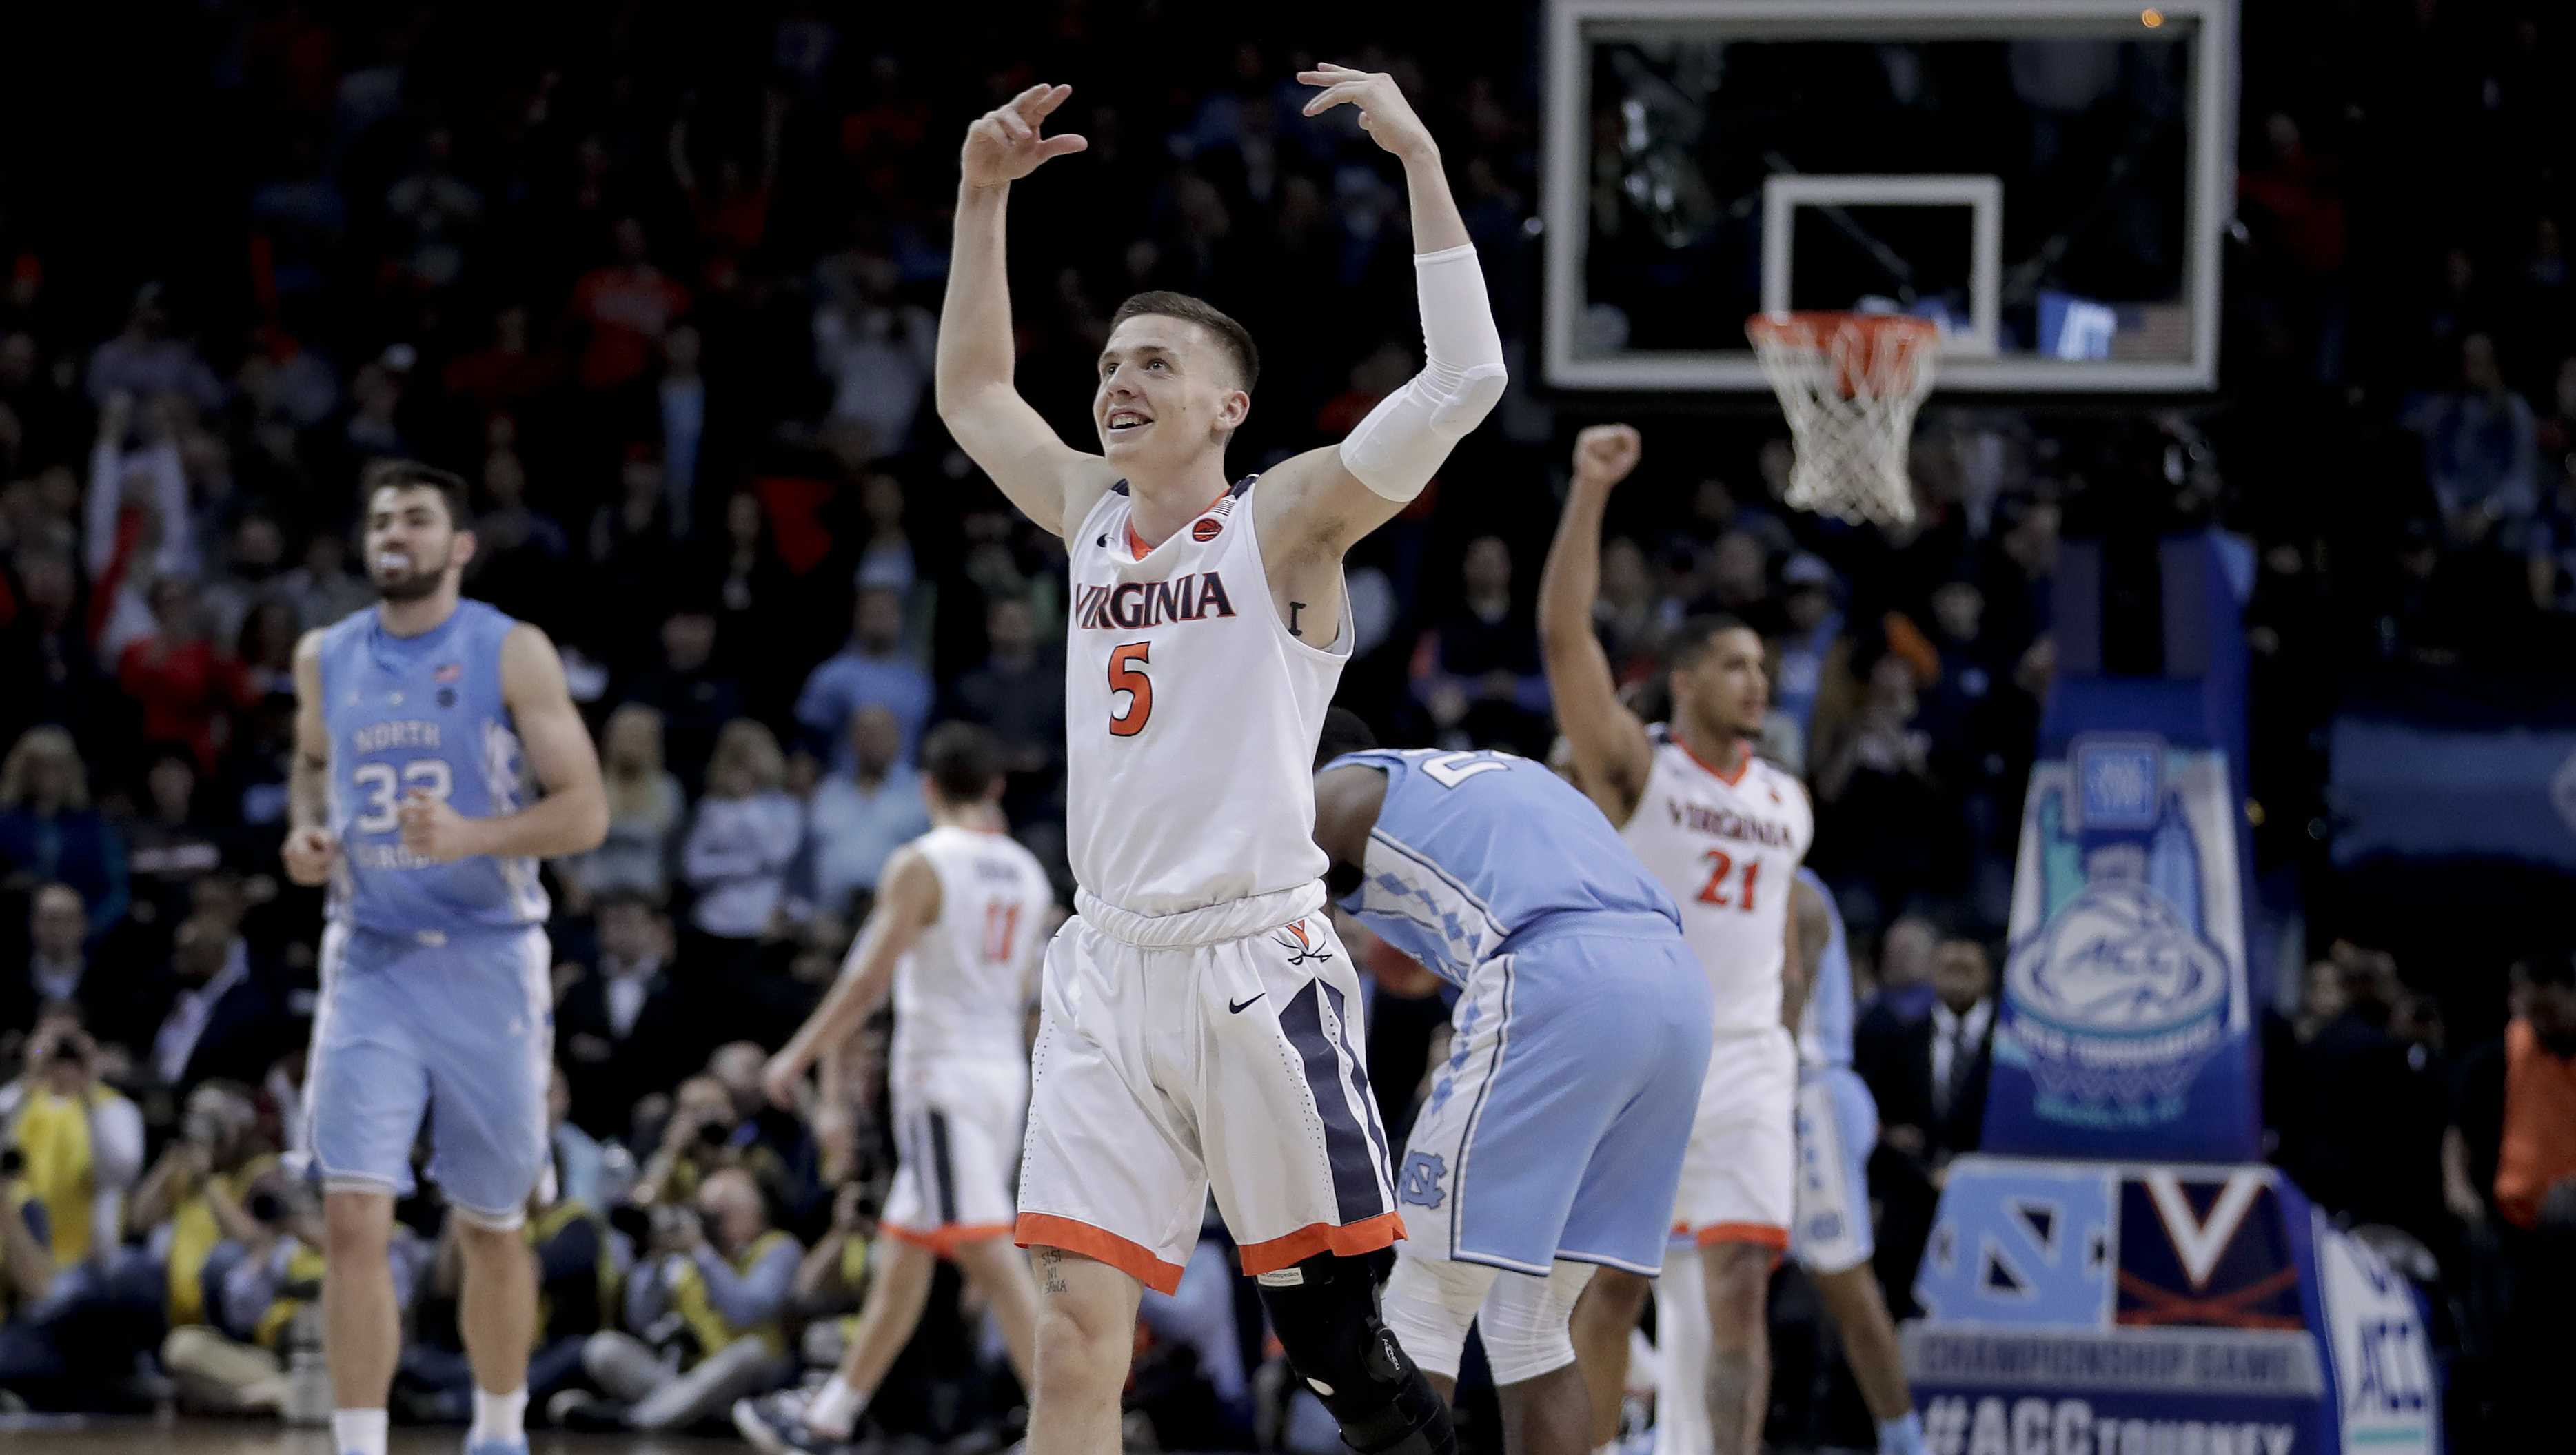 Virginia guard Kyle Guy (5) celebrates as the final seconds wind off the clock against North Carolina in the championship game of an NCAA college basketball game during the Atlantic Coast Conference men's tournament Saturday, March 10, 2018, in New York.